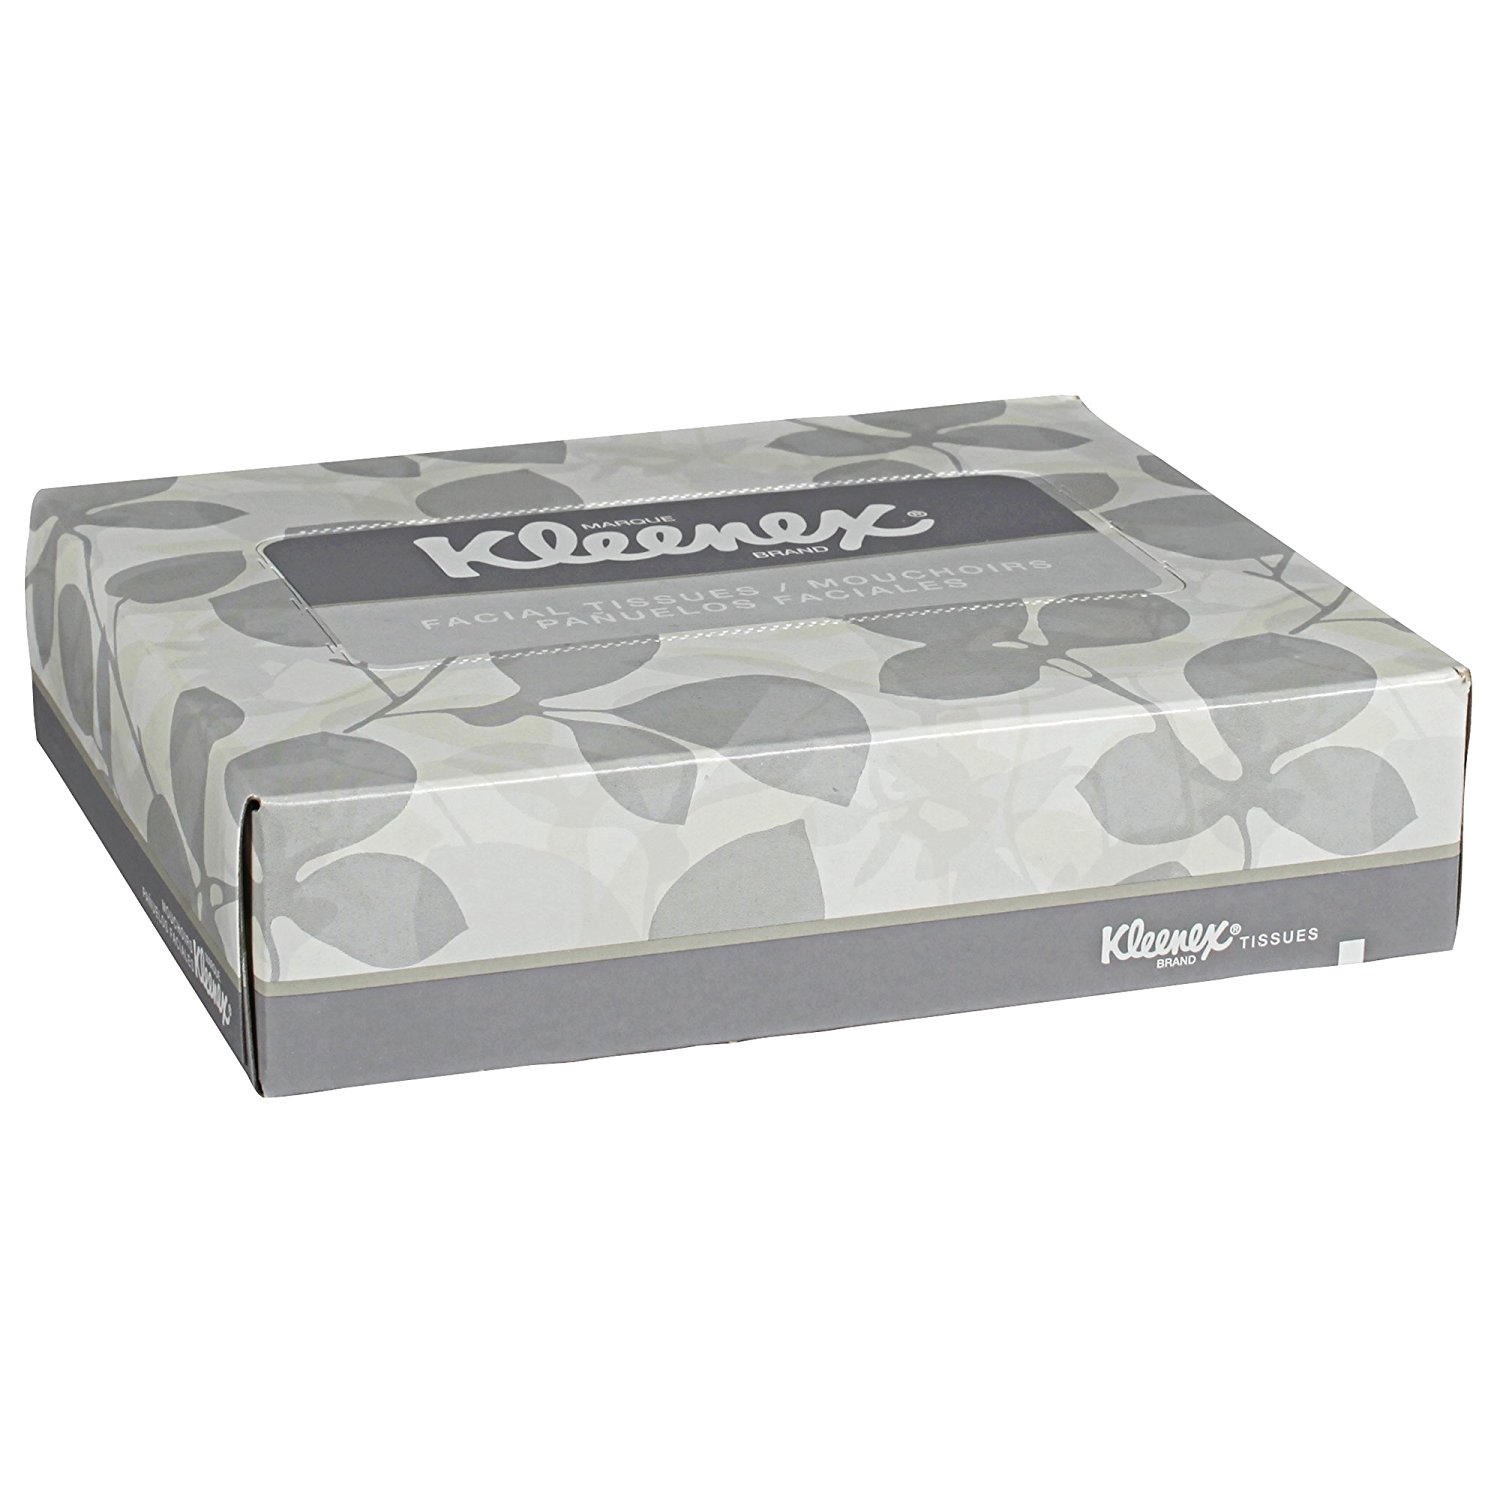 Kleenex Facial Tissue (21195), Flat Tissue Boxes, 80 Junior Boxes / Case, 40 Tissues / Box, Ship from America